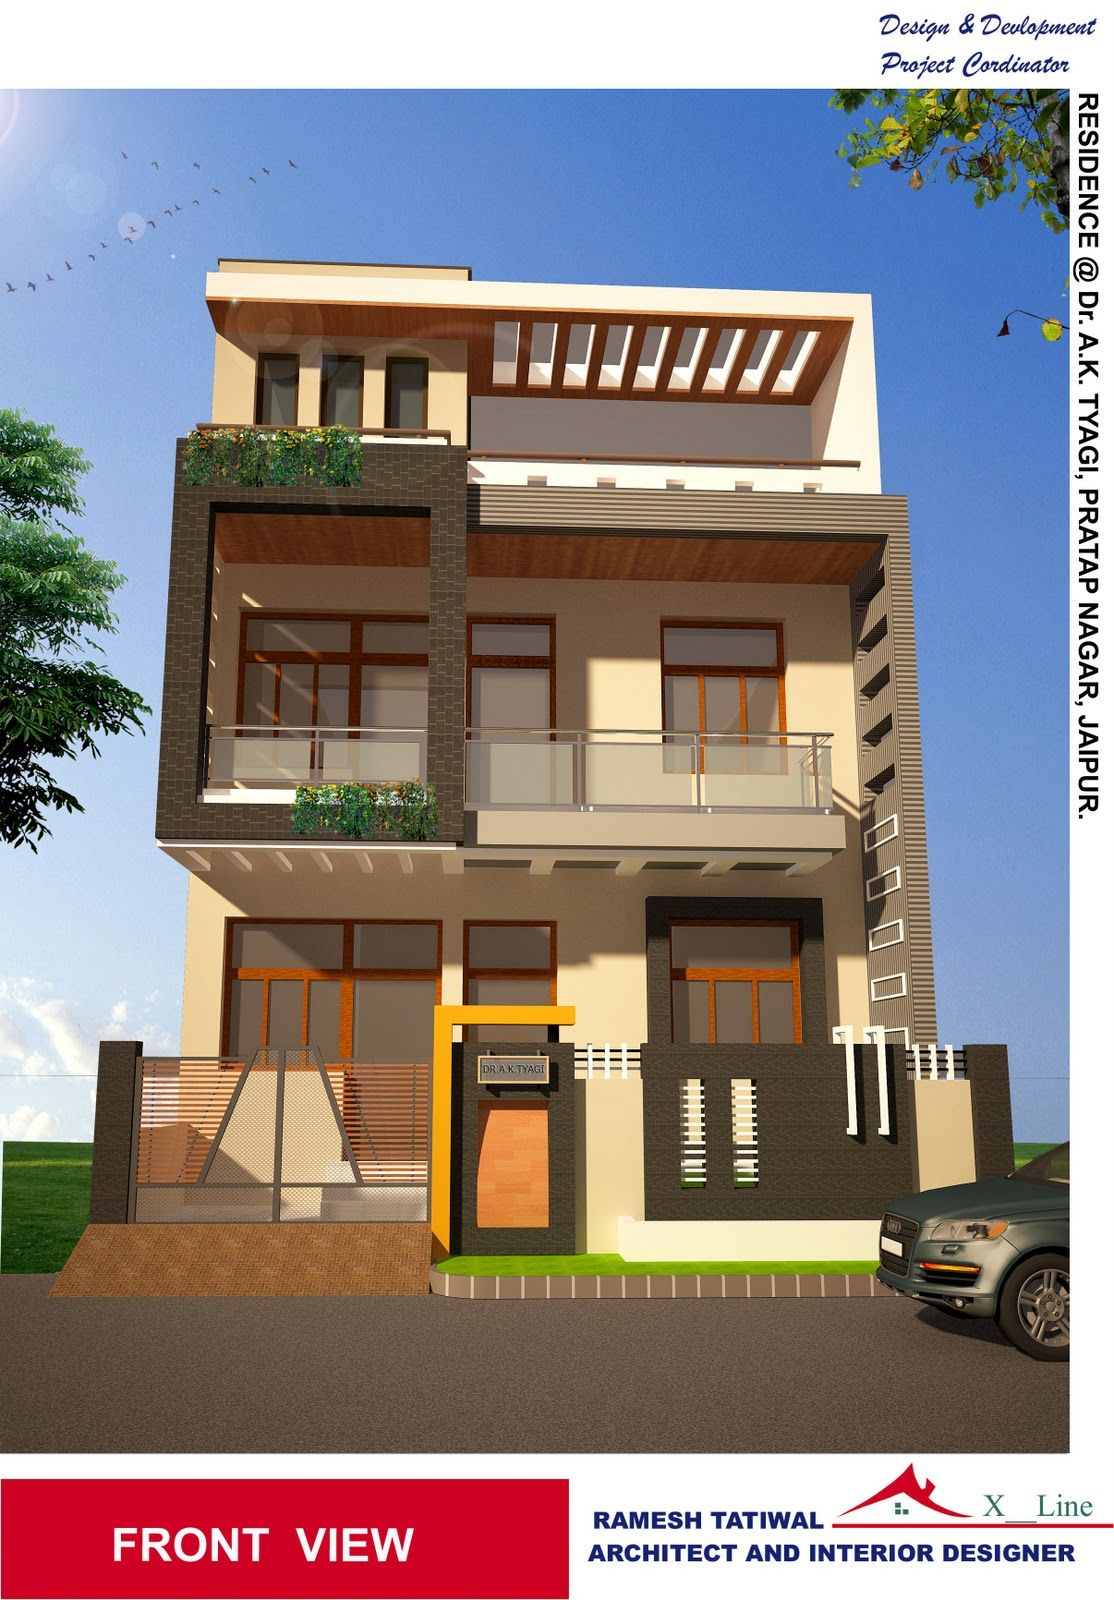 Housedesigns Modern Indian Home Architecture Design From: indian home exterior design photos